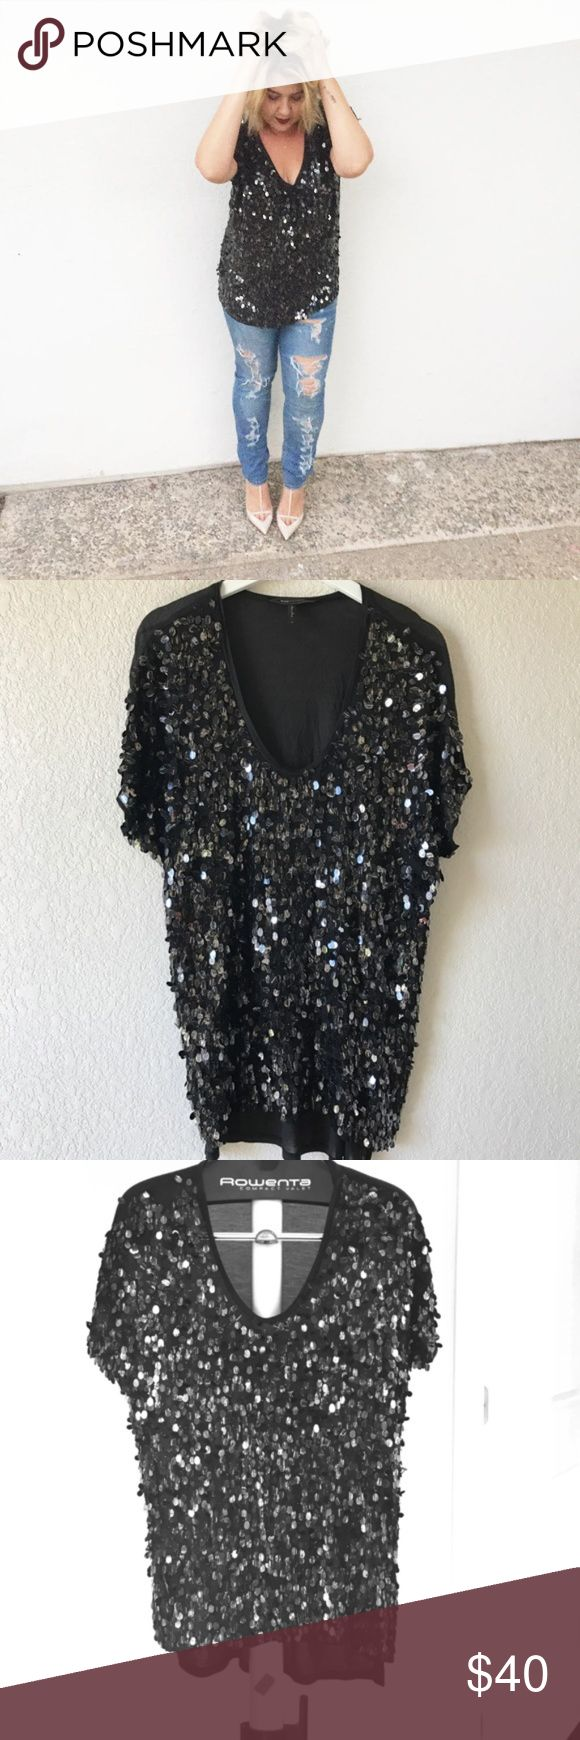 Black BCBGMaxAzria Paillette/Sequin Tunic Top Black BCBGMaxAzria Paillette/Sequin Tunic Top Size Large Perfect for a night out or holiday party.  The entire back is slightly sheer and it fits like a long loose top, great over leggings! SMOKE FREE HOME     SHIPS SAME DAY BCBGMaxAzria Tops